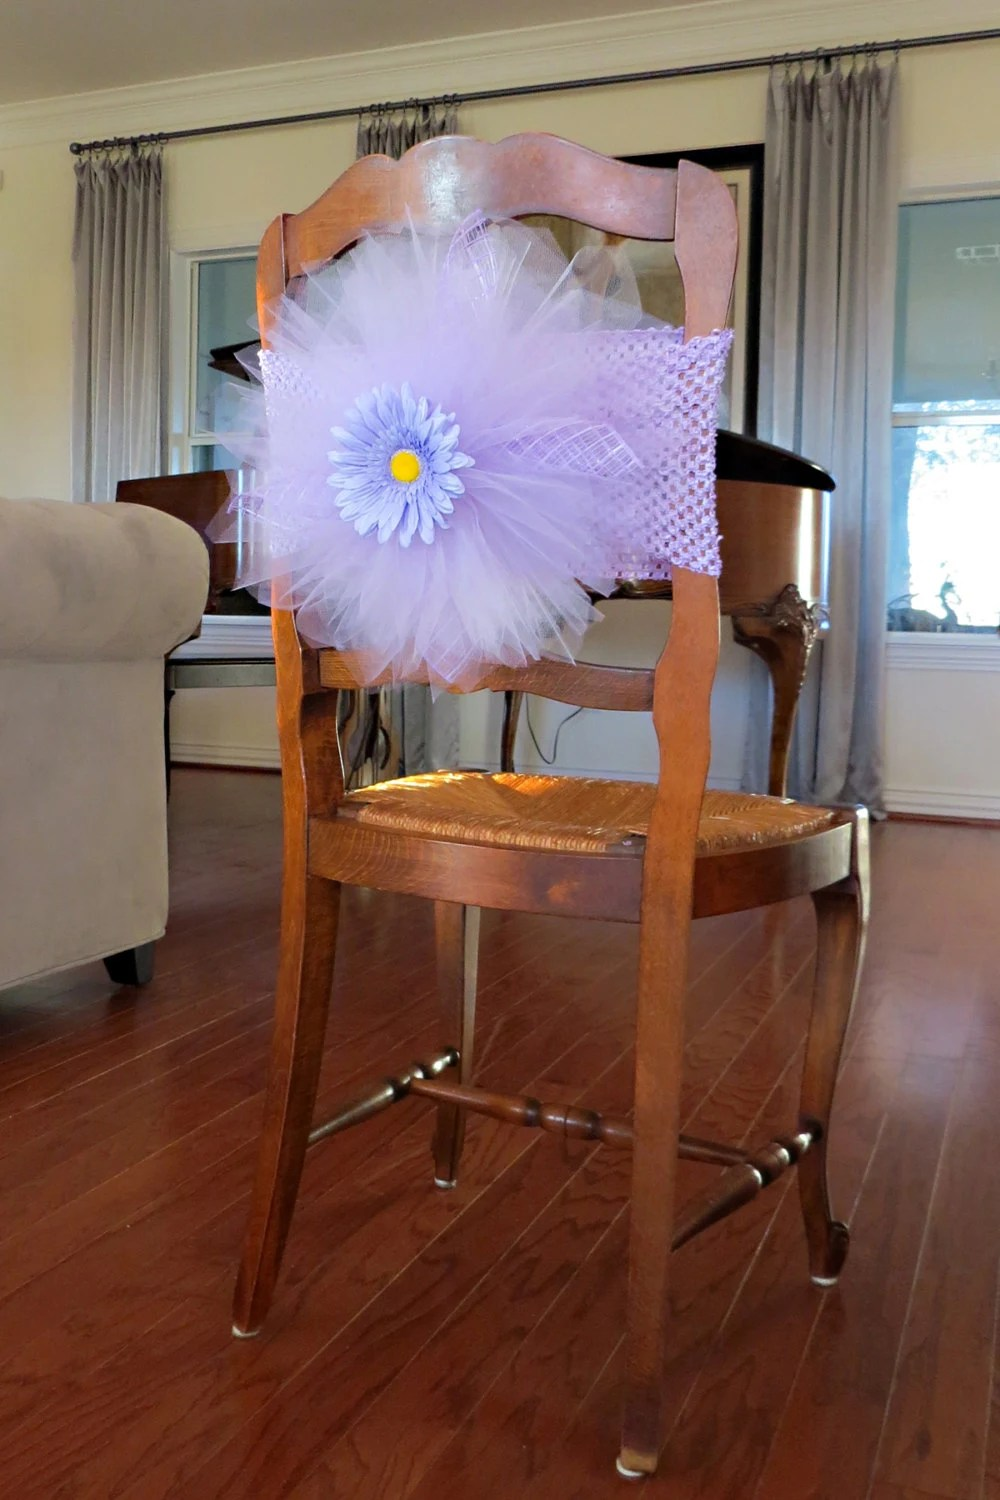 elastic chair covers for weddings snorlax bean bag review tulle cover tutu burst bridal shower baby